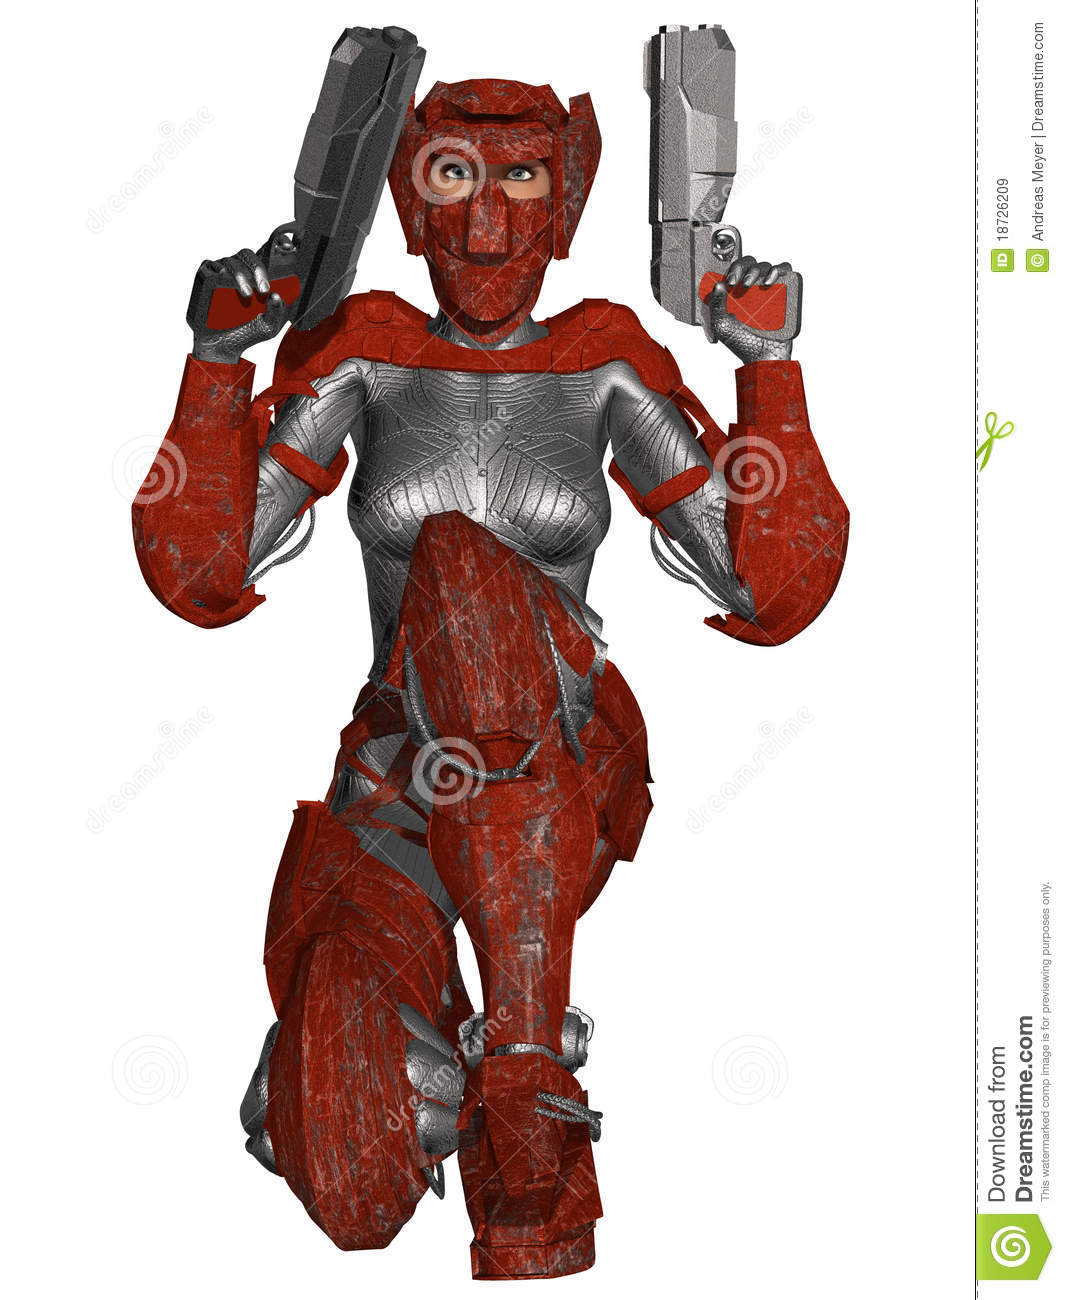 Futuristic Battle Suit Royalty Free Stock Images.